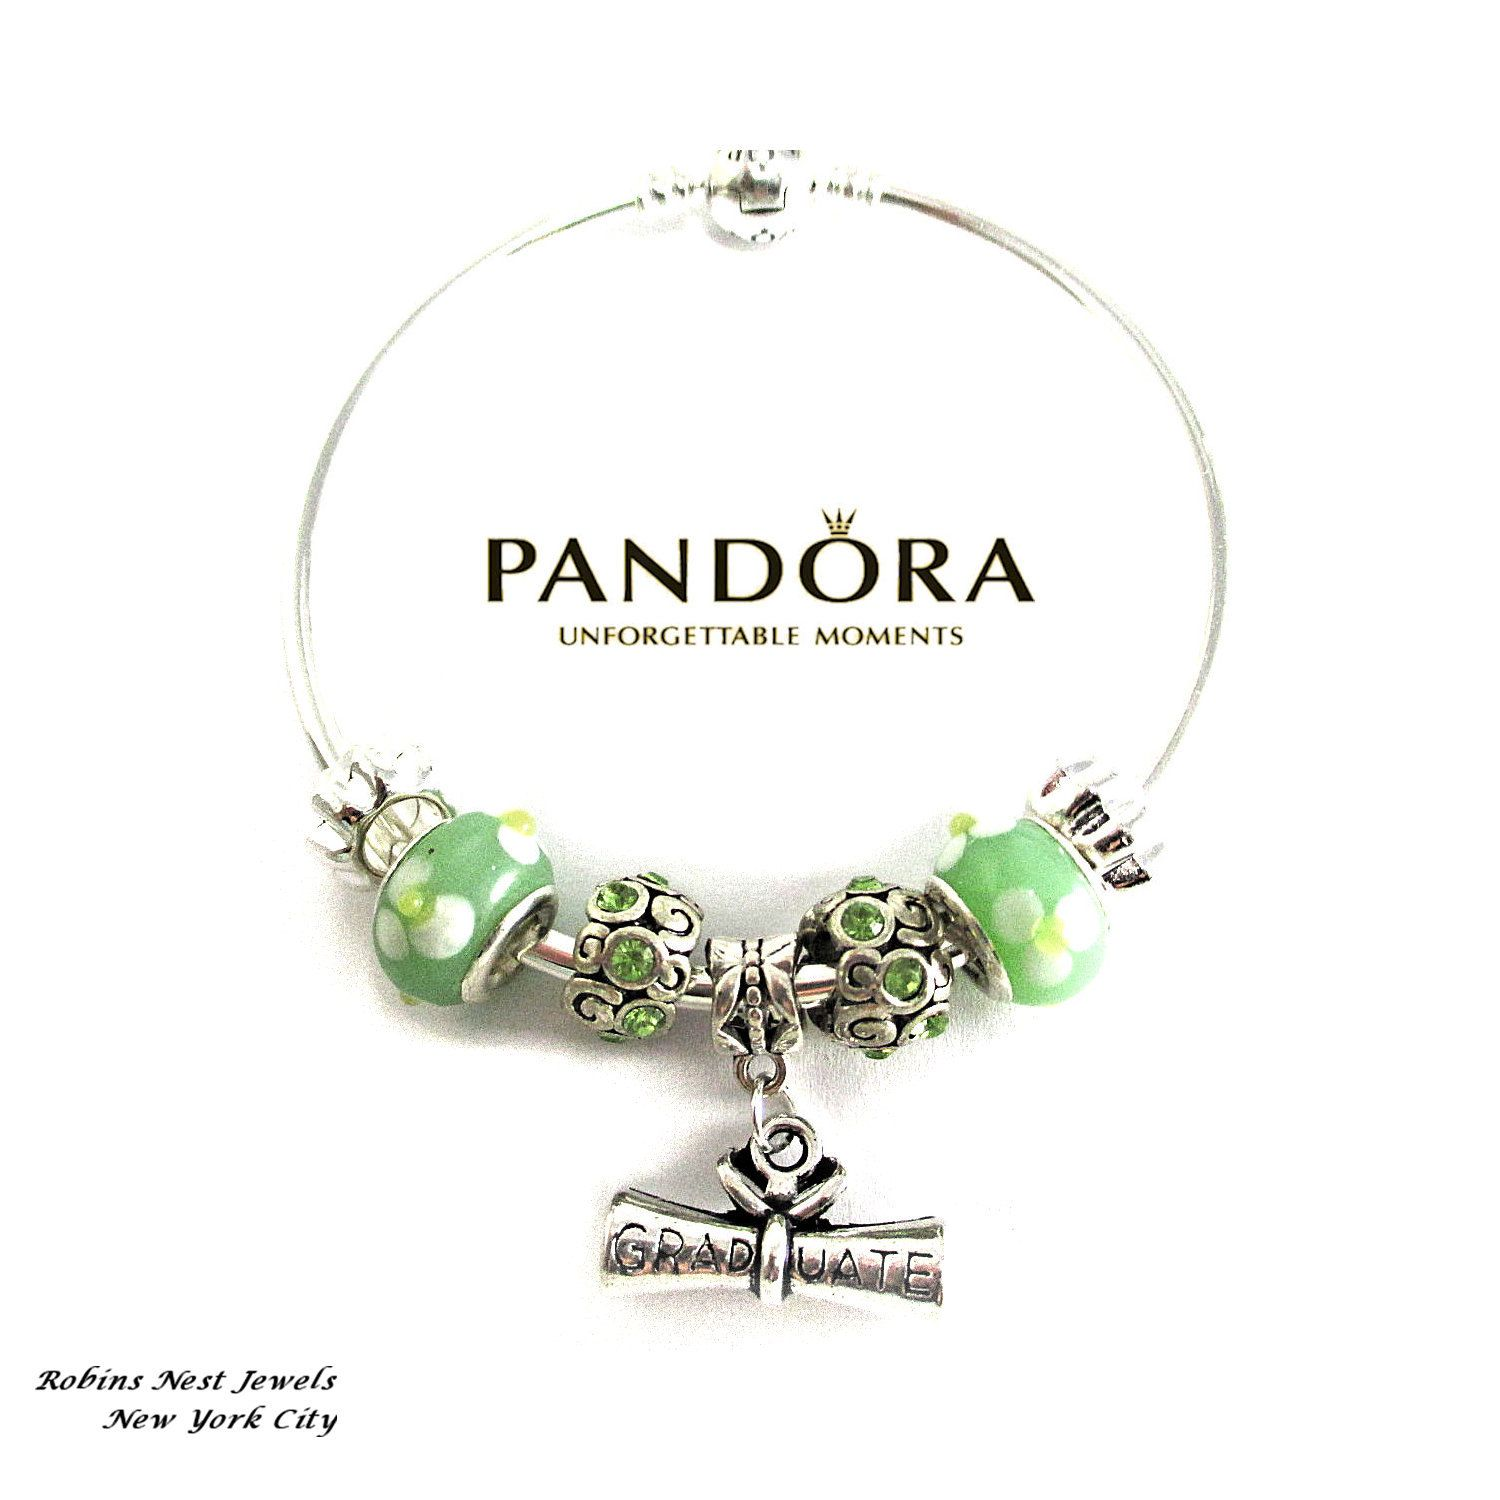 dsc engagement charms bristol charm index jdownloads pandora shops in ring bangles bangle